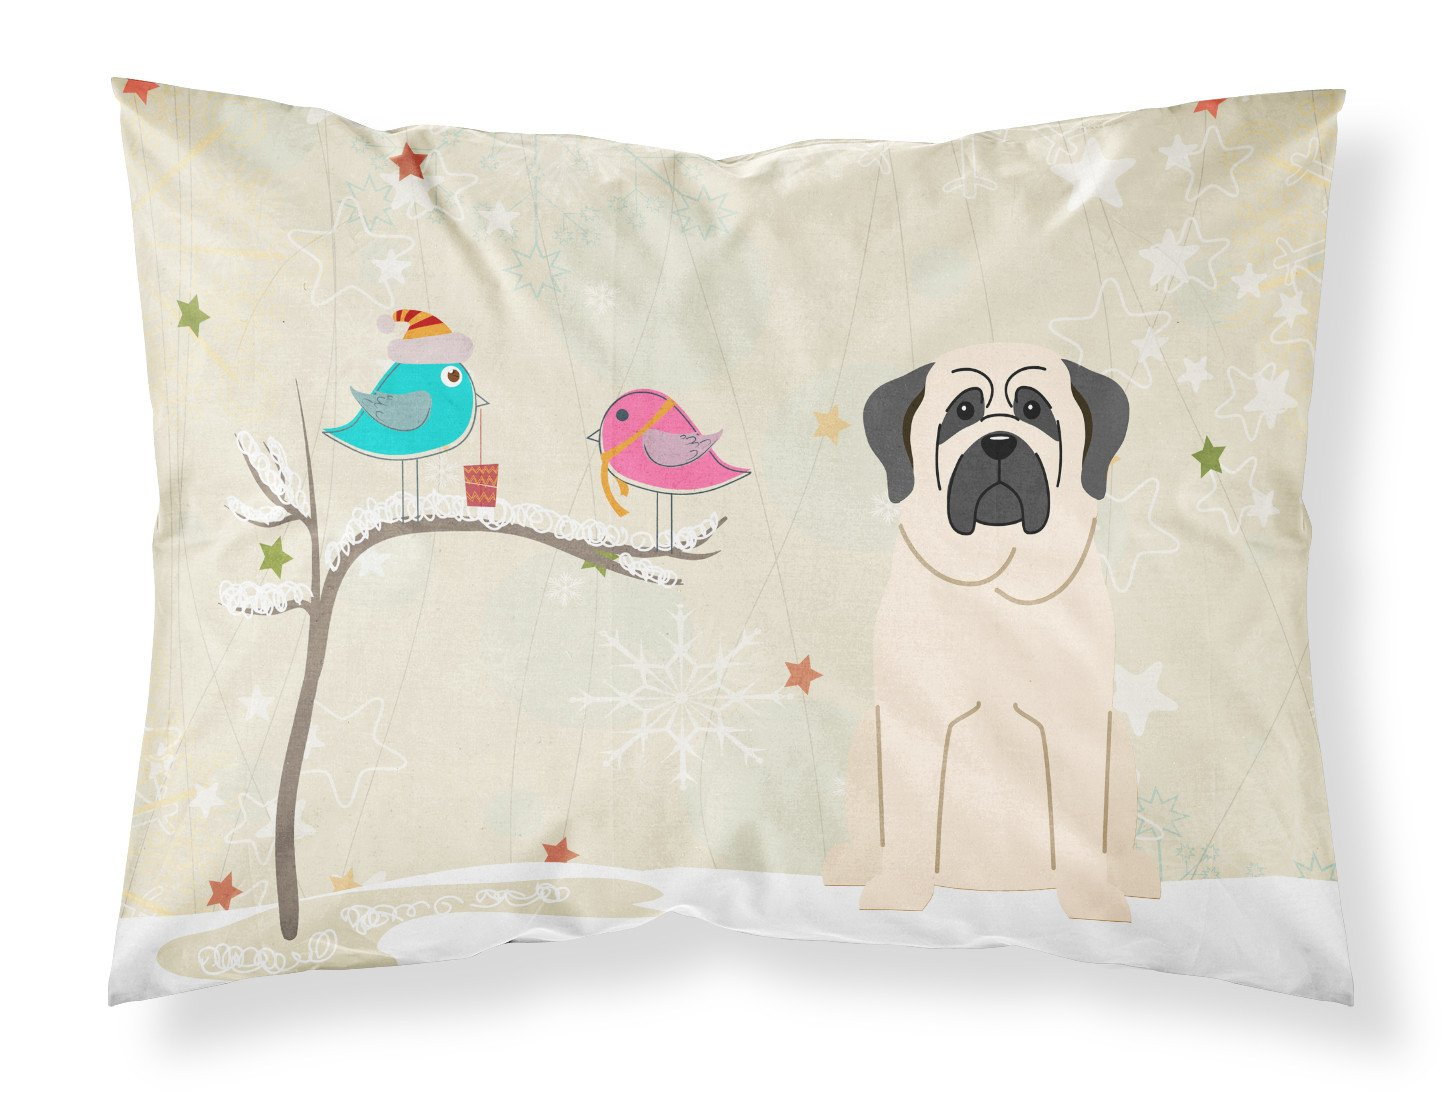 Christmas Presents between Friends Mastiff White Fabric Standard Pillowcase BB2489PILLOWCASE by Caroline's Treasures